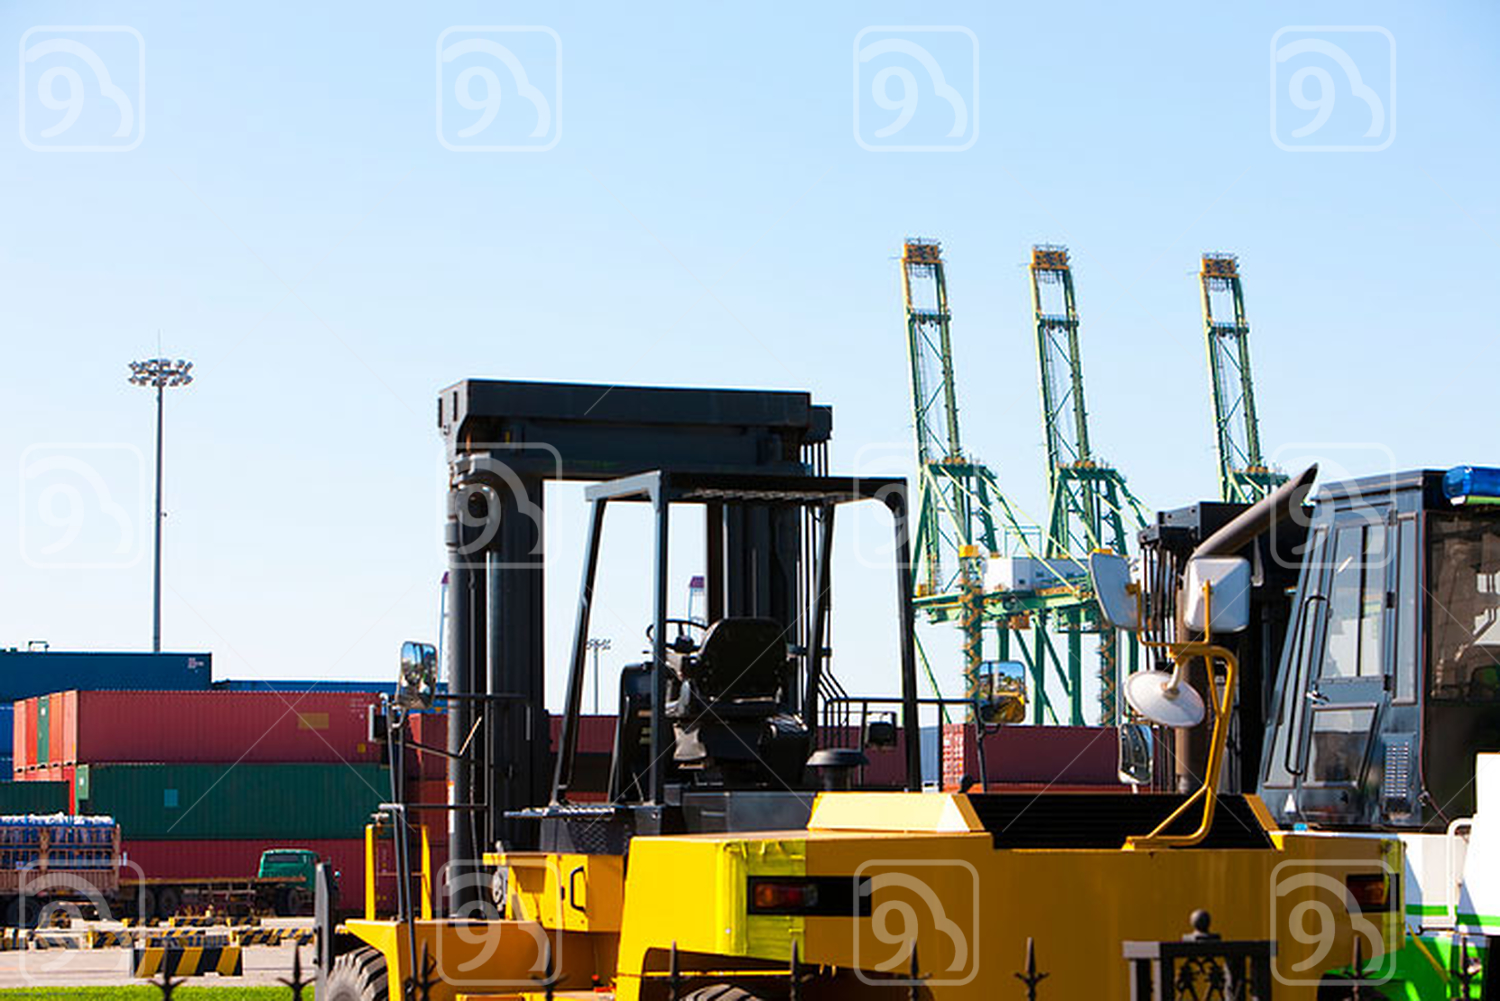 Trucks and cargo containers